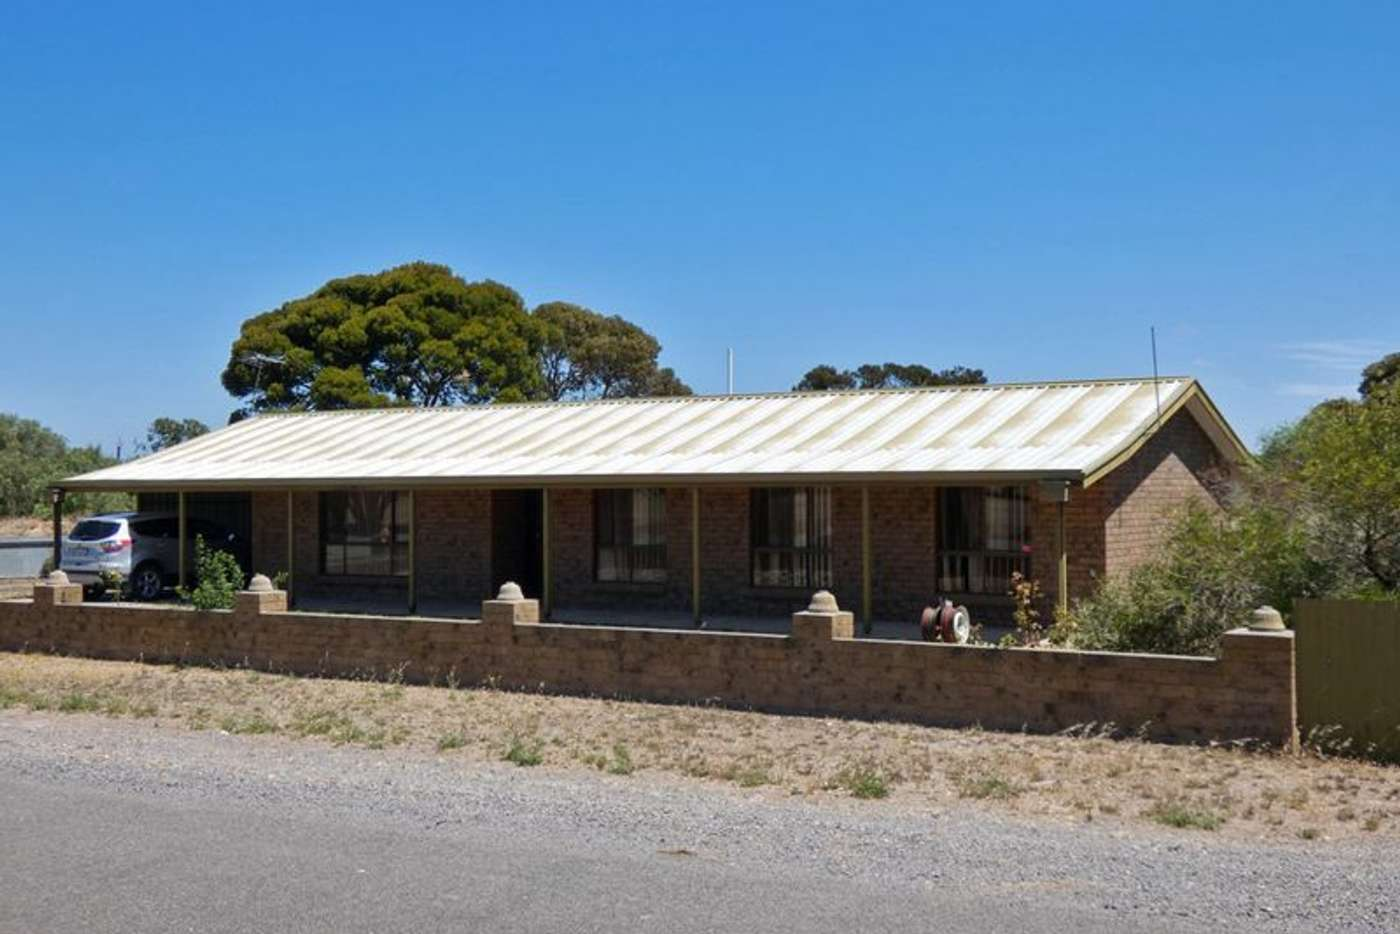 Main view of Homely house listing, 3 Park Terrace North, Edithburgh SA 5583